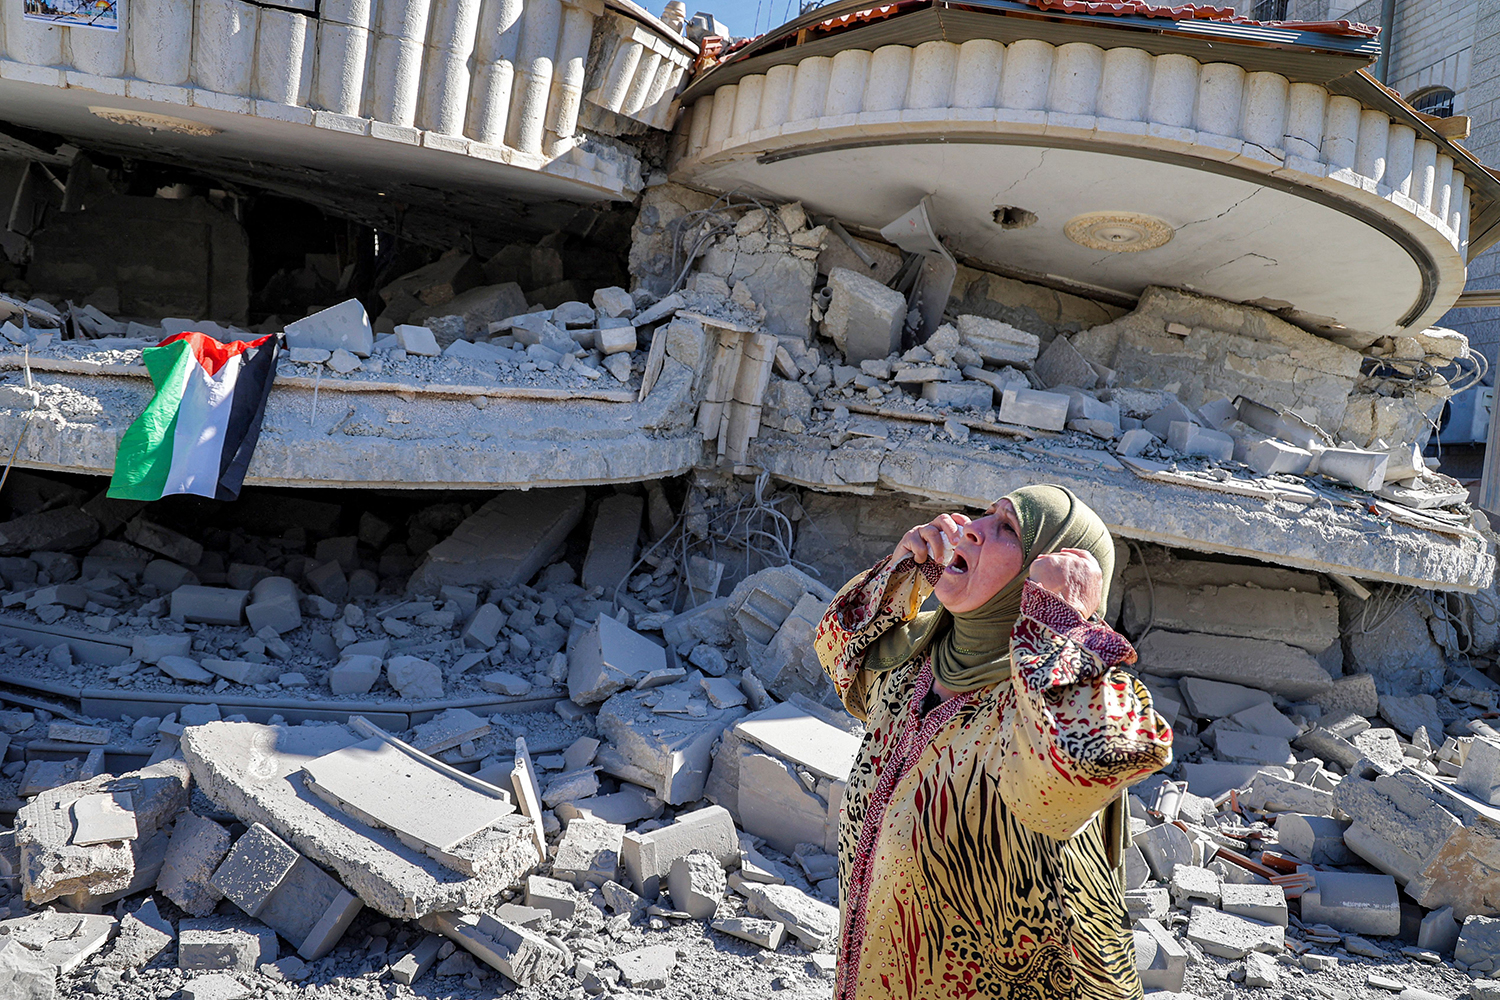 Woman cries near demolished building in West Bank